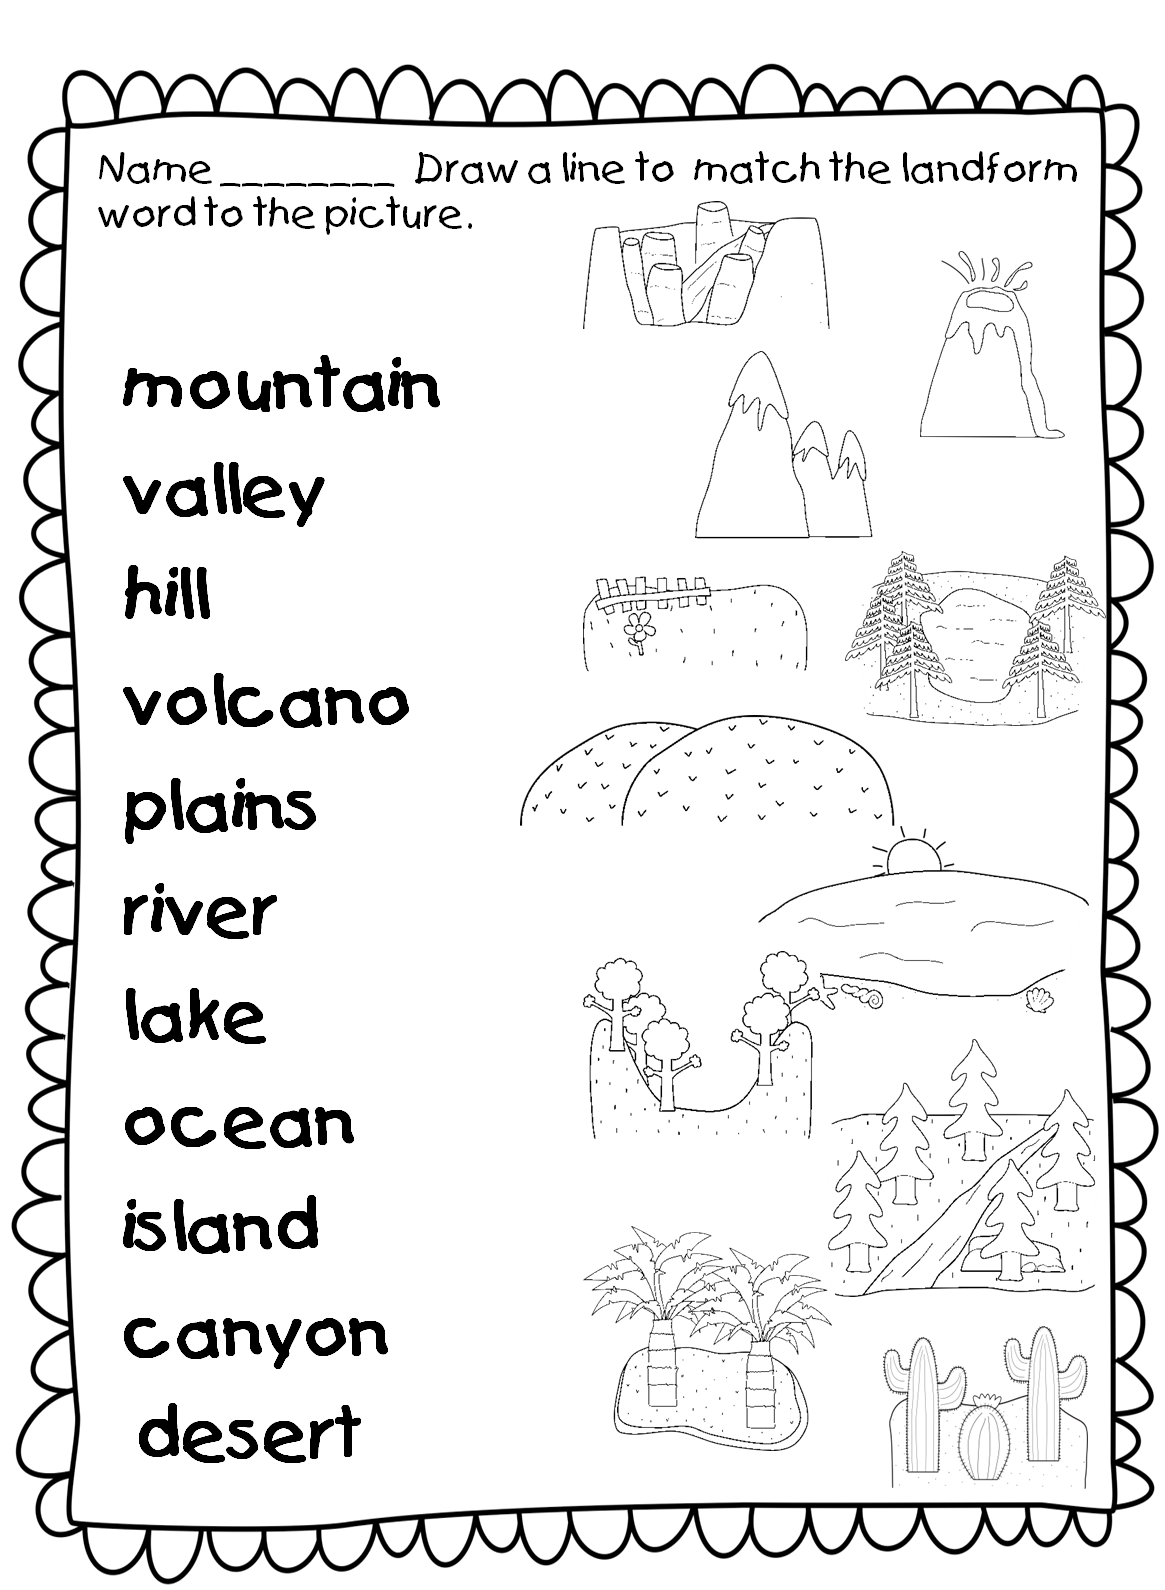 Worksheets Landforms Worksheet first grade simple matching worksheet to test students knowledge of landforms before or during unit